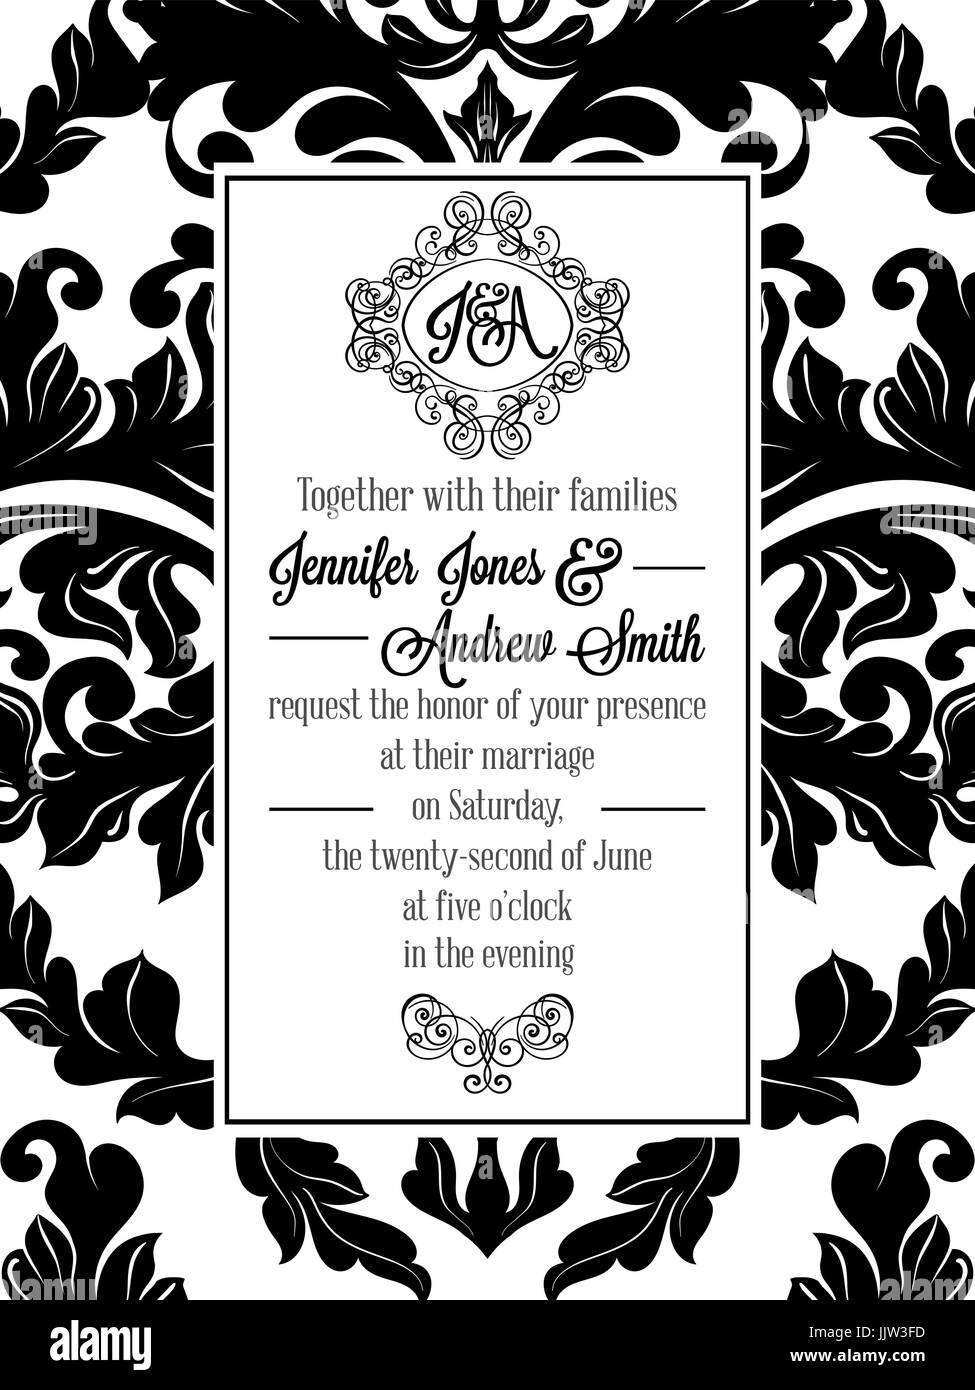 Vintage Delicate Formal Invitation Card With Black And White